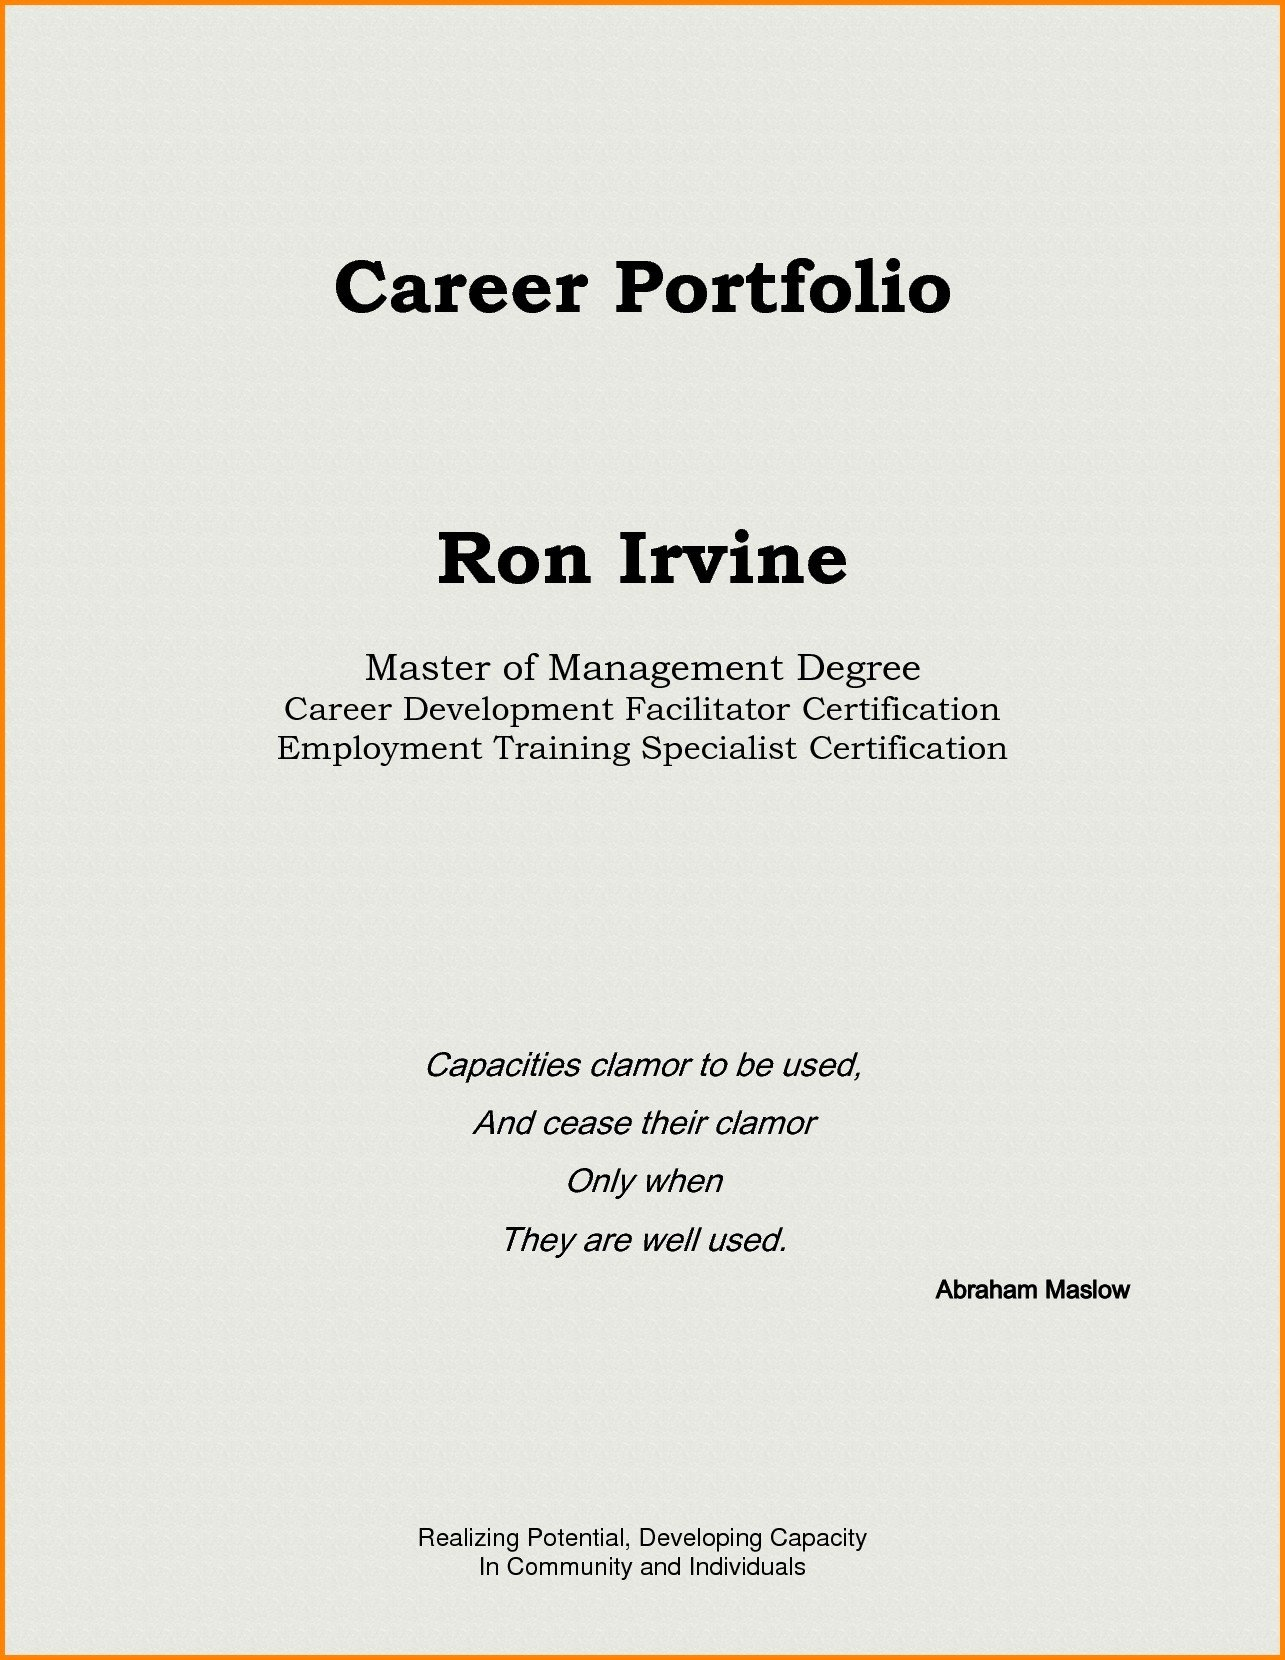 Sample Cover Page for Professional Portfolio Best